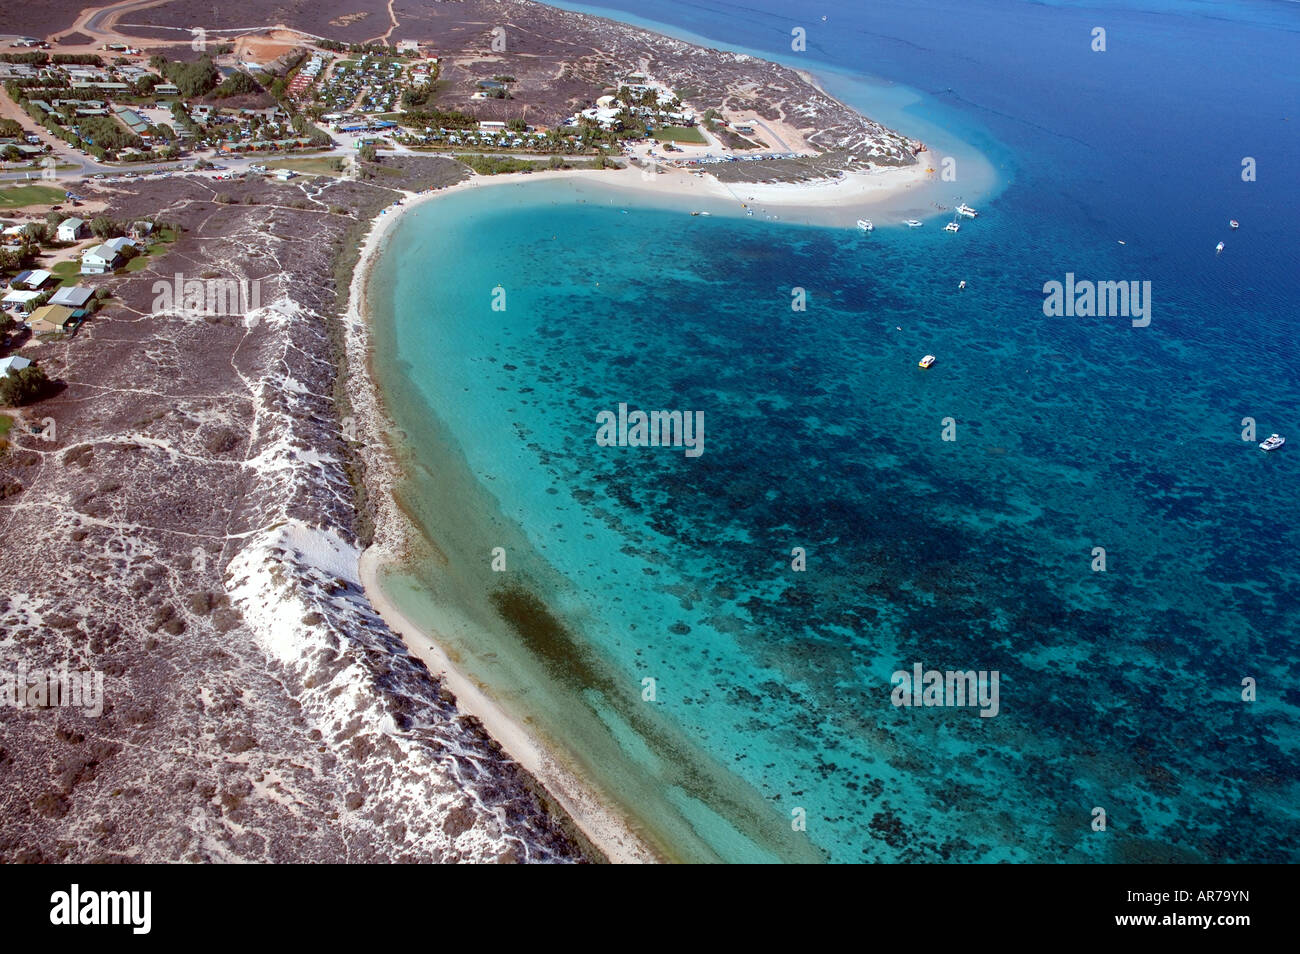 Aerial view of the township boats and reefs of Coral Bay Ningaloo Reef Marine Park Western Australia Stock Photo